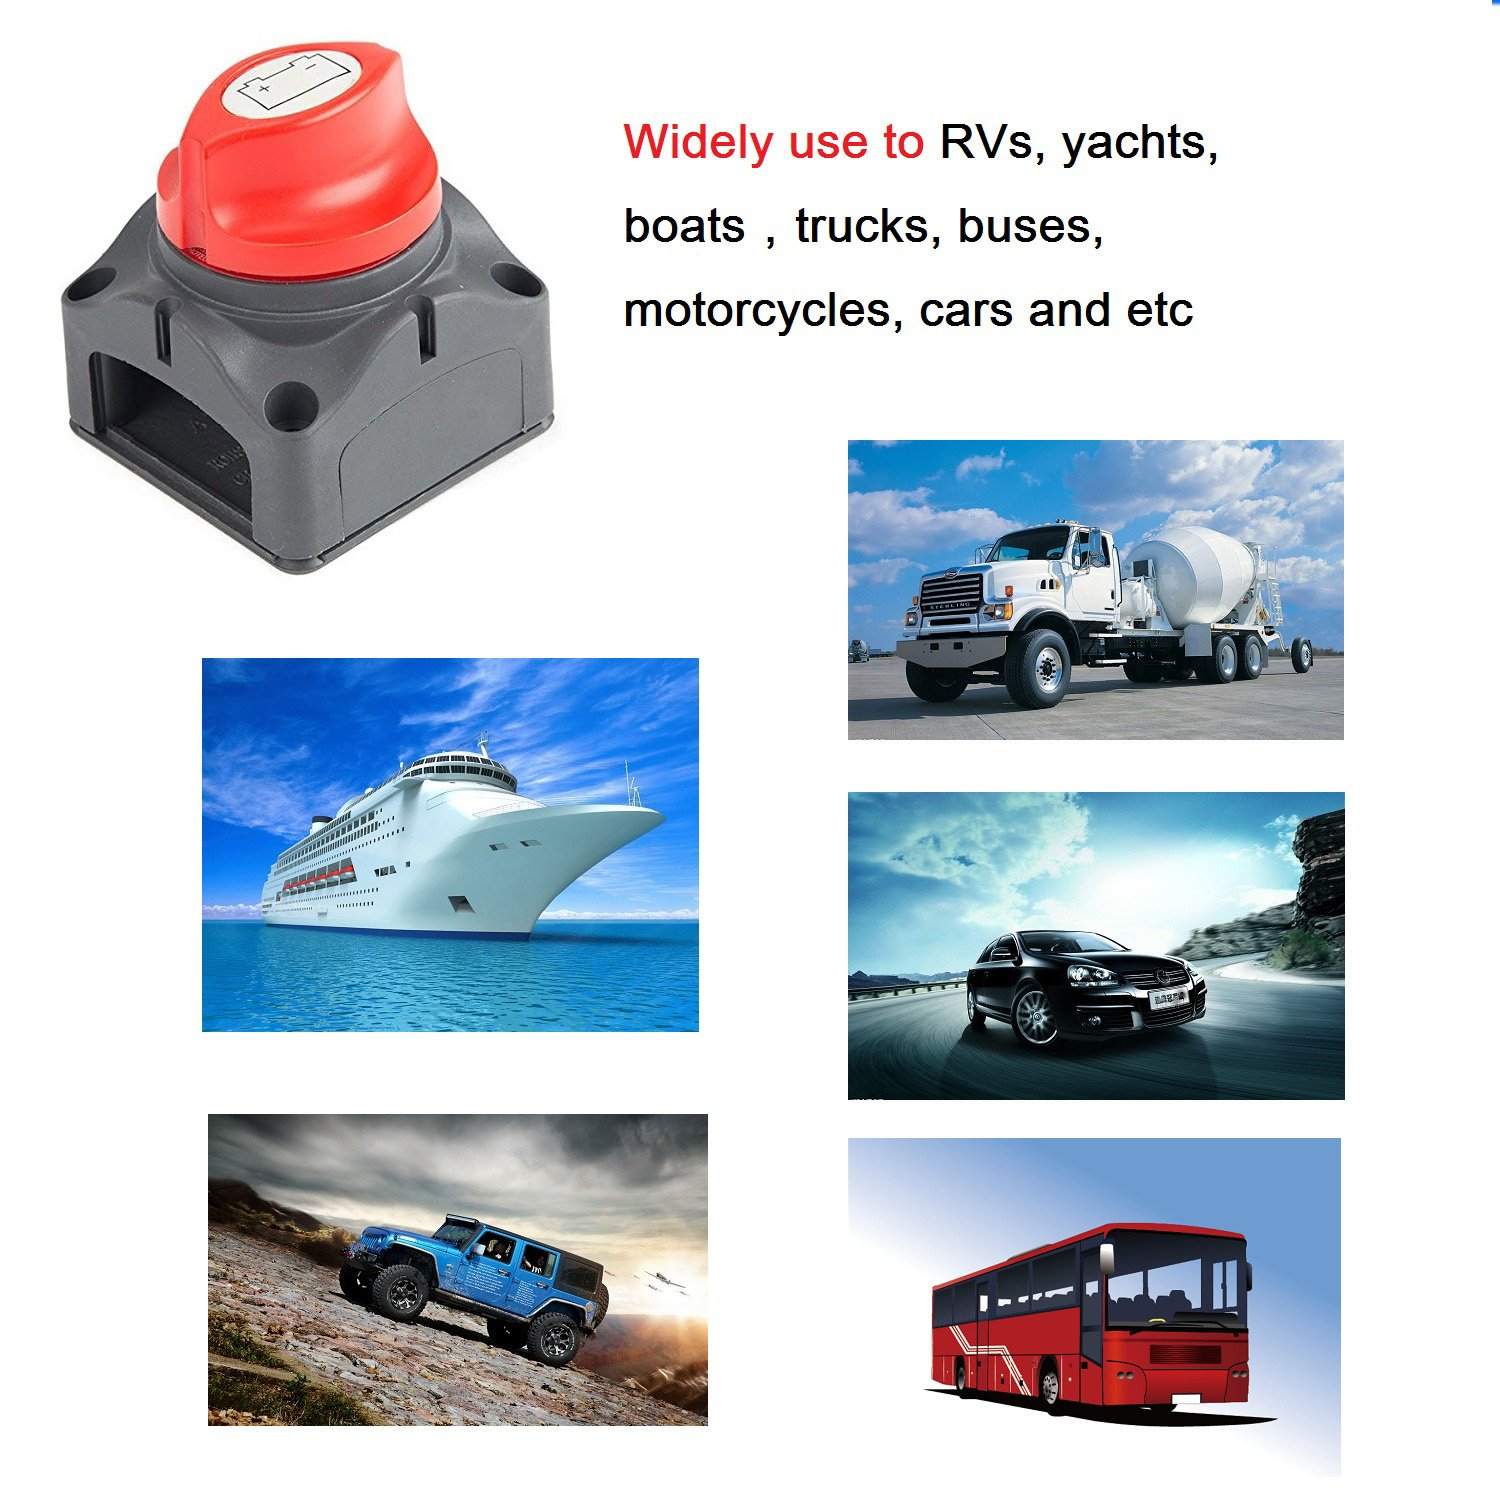 VVHOOY Battery Disconnect Isolator Master Cut off Kill Switch On//Off Shut-Off Switch for RV Battery Marine Caravan Boat Truck Van Car ATV Vehicles 275//1250 Amps Waterproof